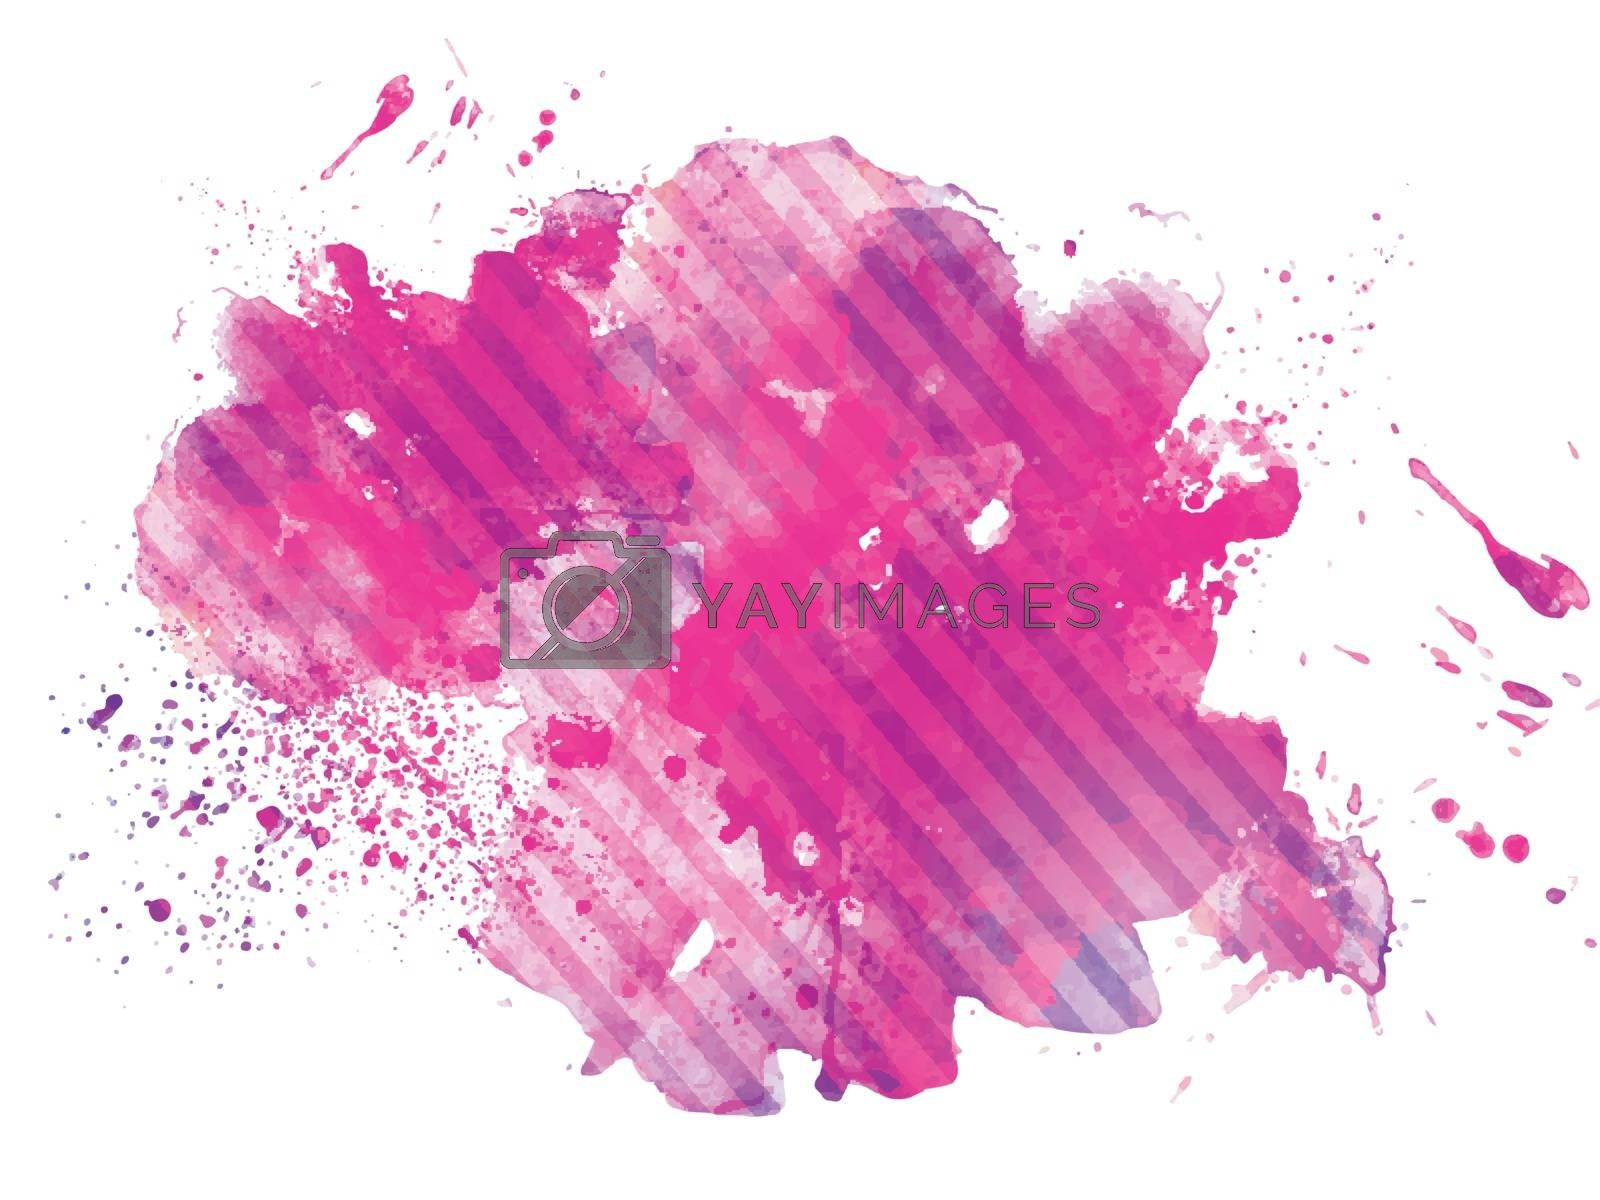 Abstract pink color splash background.